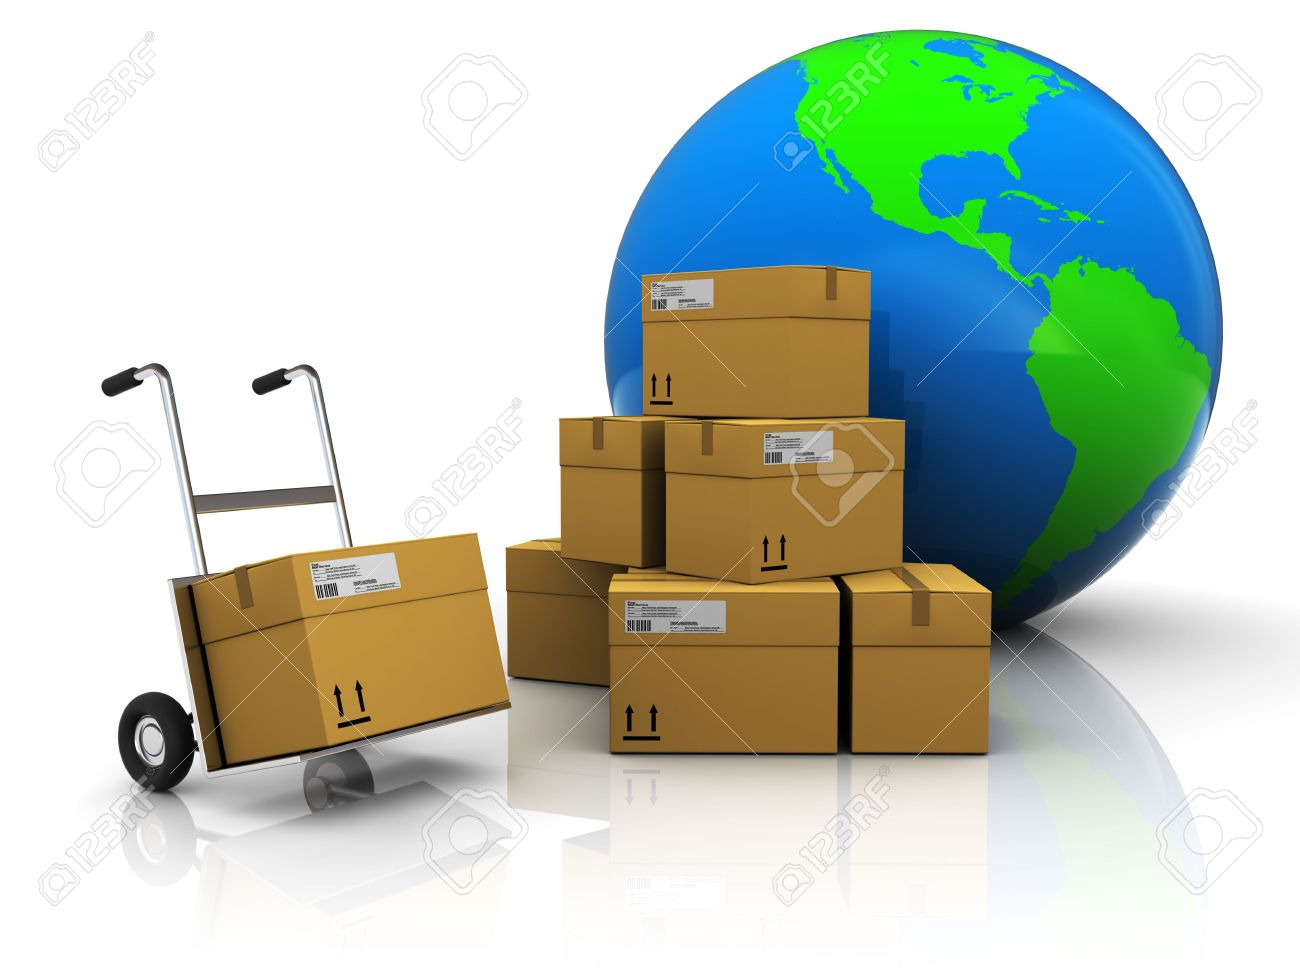 abstract 3d illustration of warehouse with earth globe Stock Illustration - 6793286